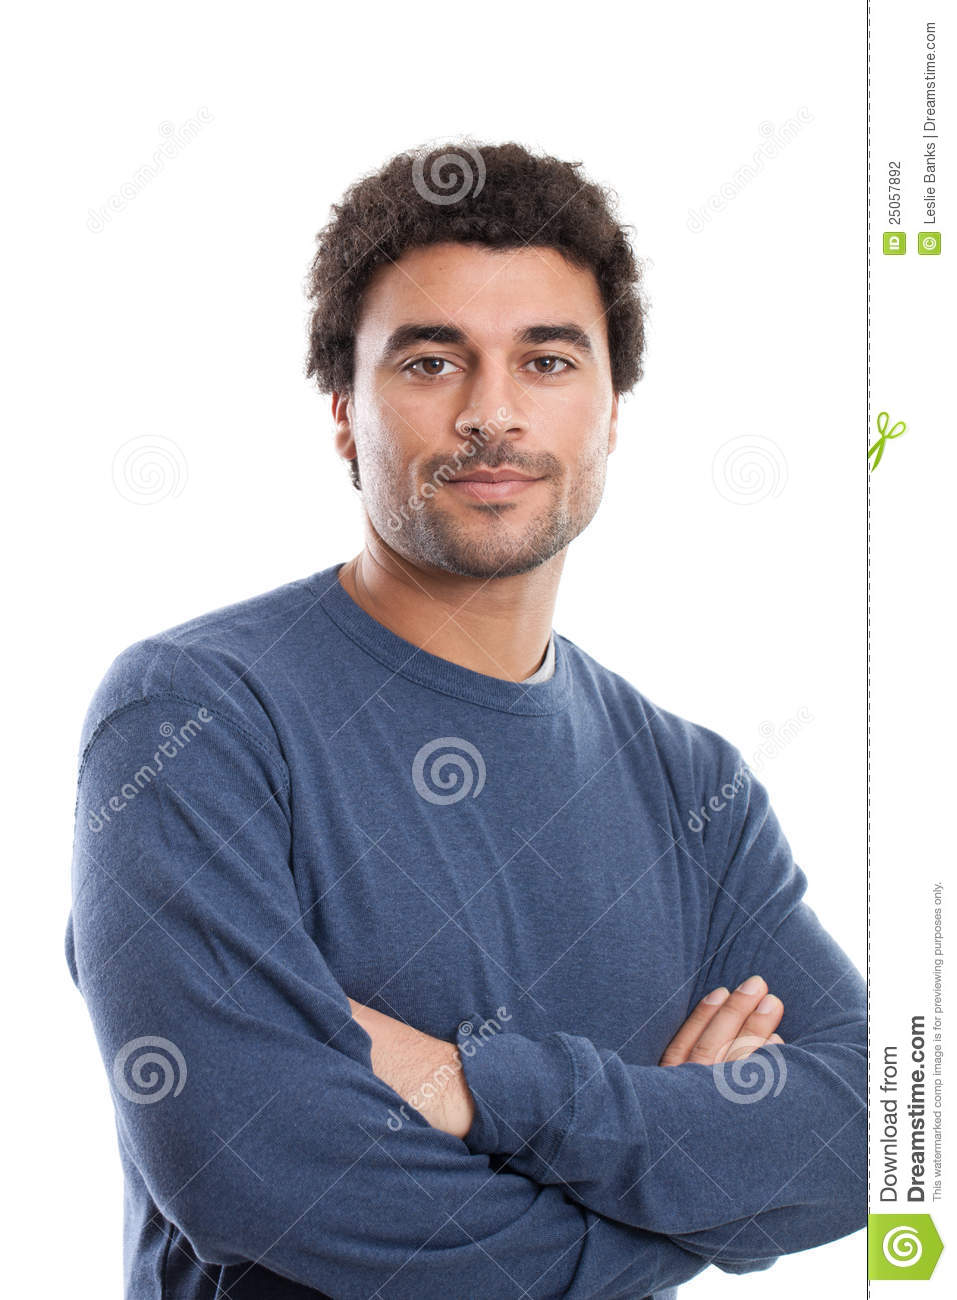 middle eastern single men in guy Really good looking 30 year old middle eastern/arab guy here 5'11 favorite this post good looking middle eastern/arab looking 5'11 (180cm) status: single.